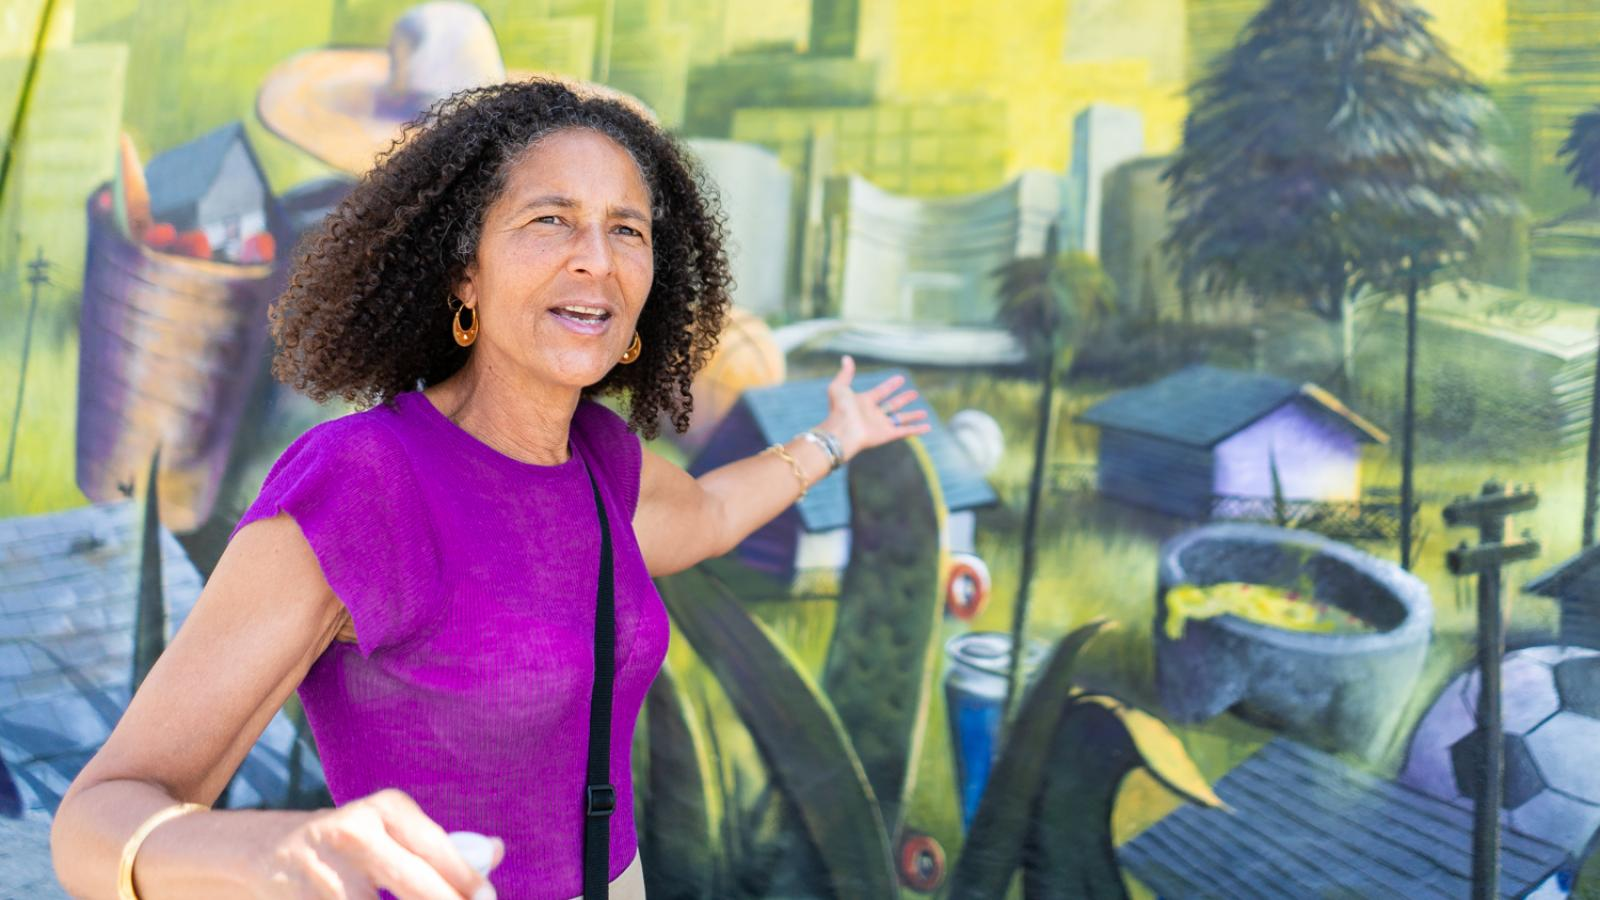 Alison Rose Jefferson stands in front on mural.